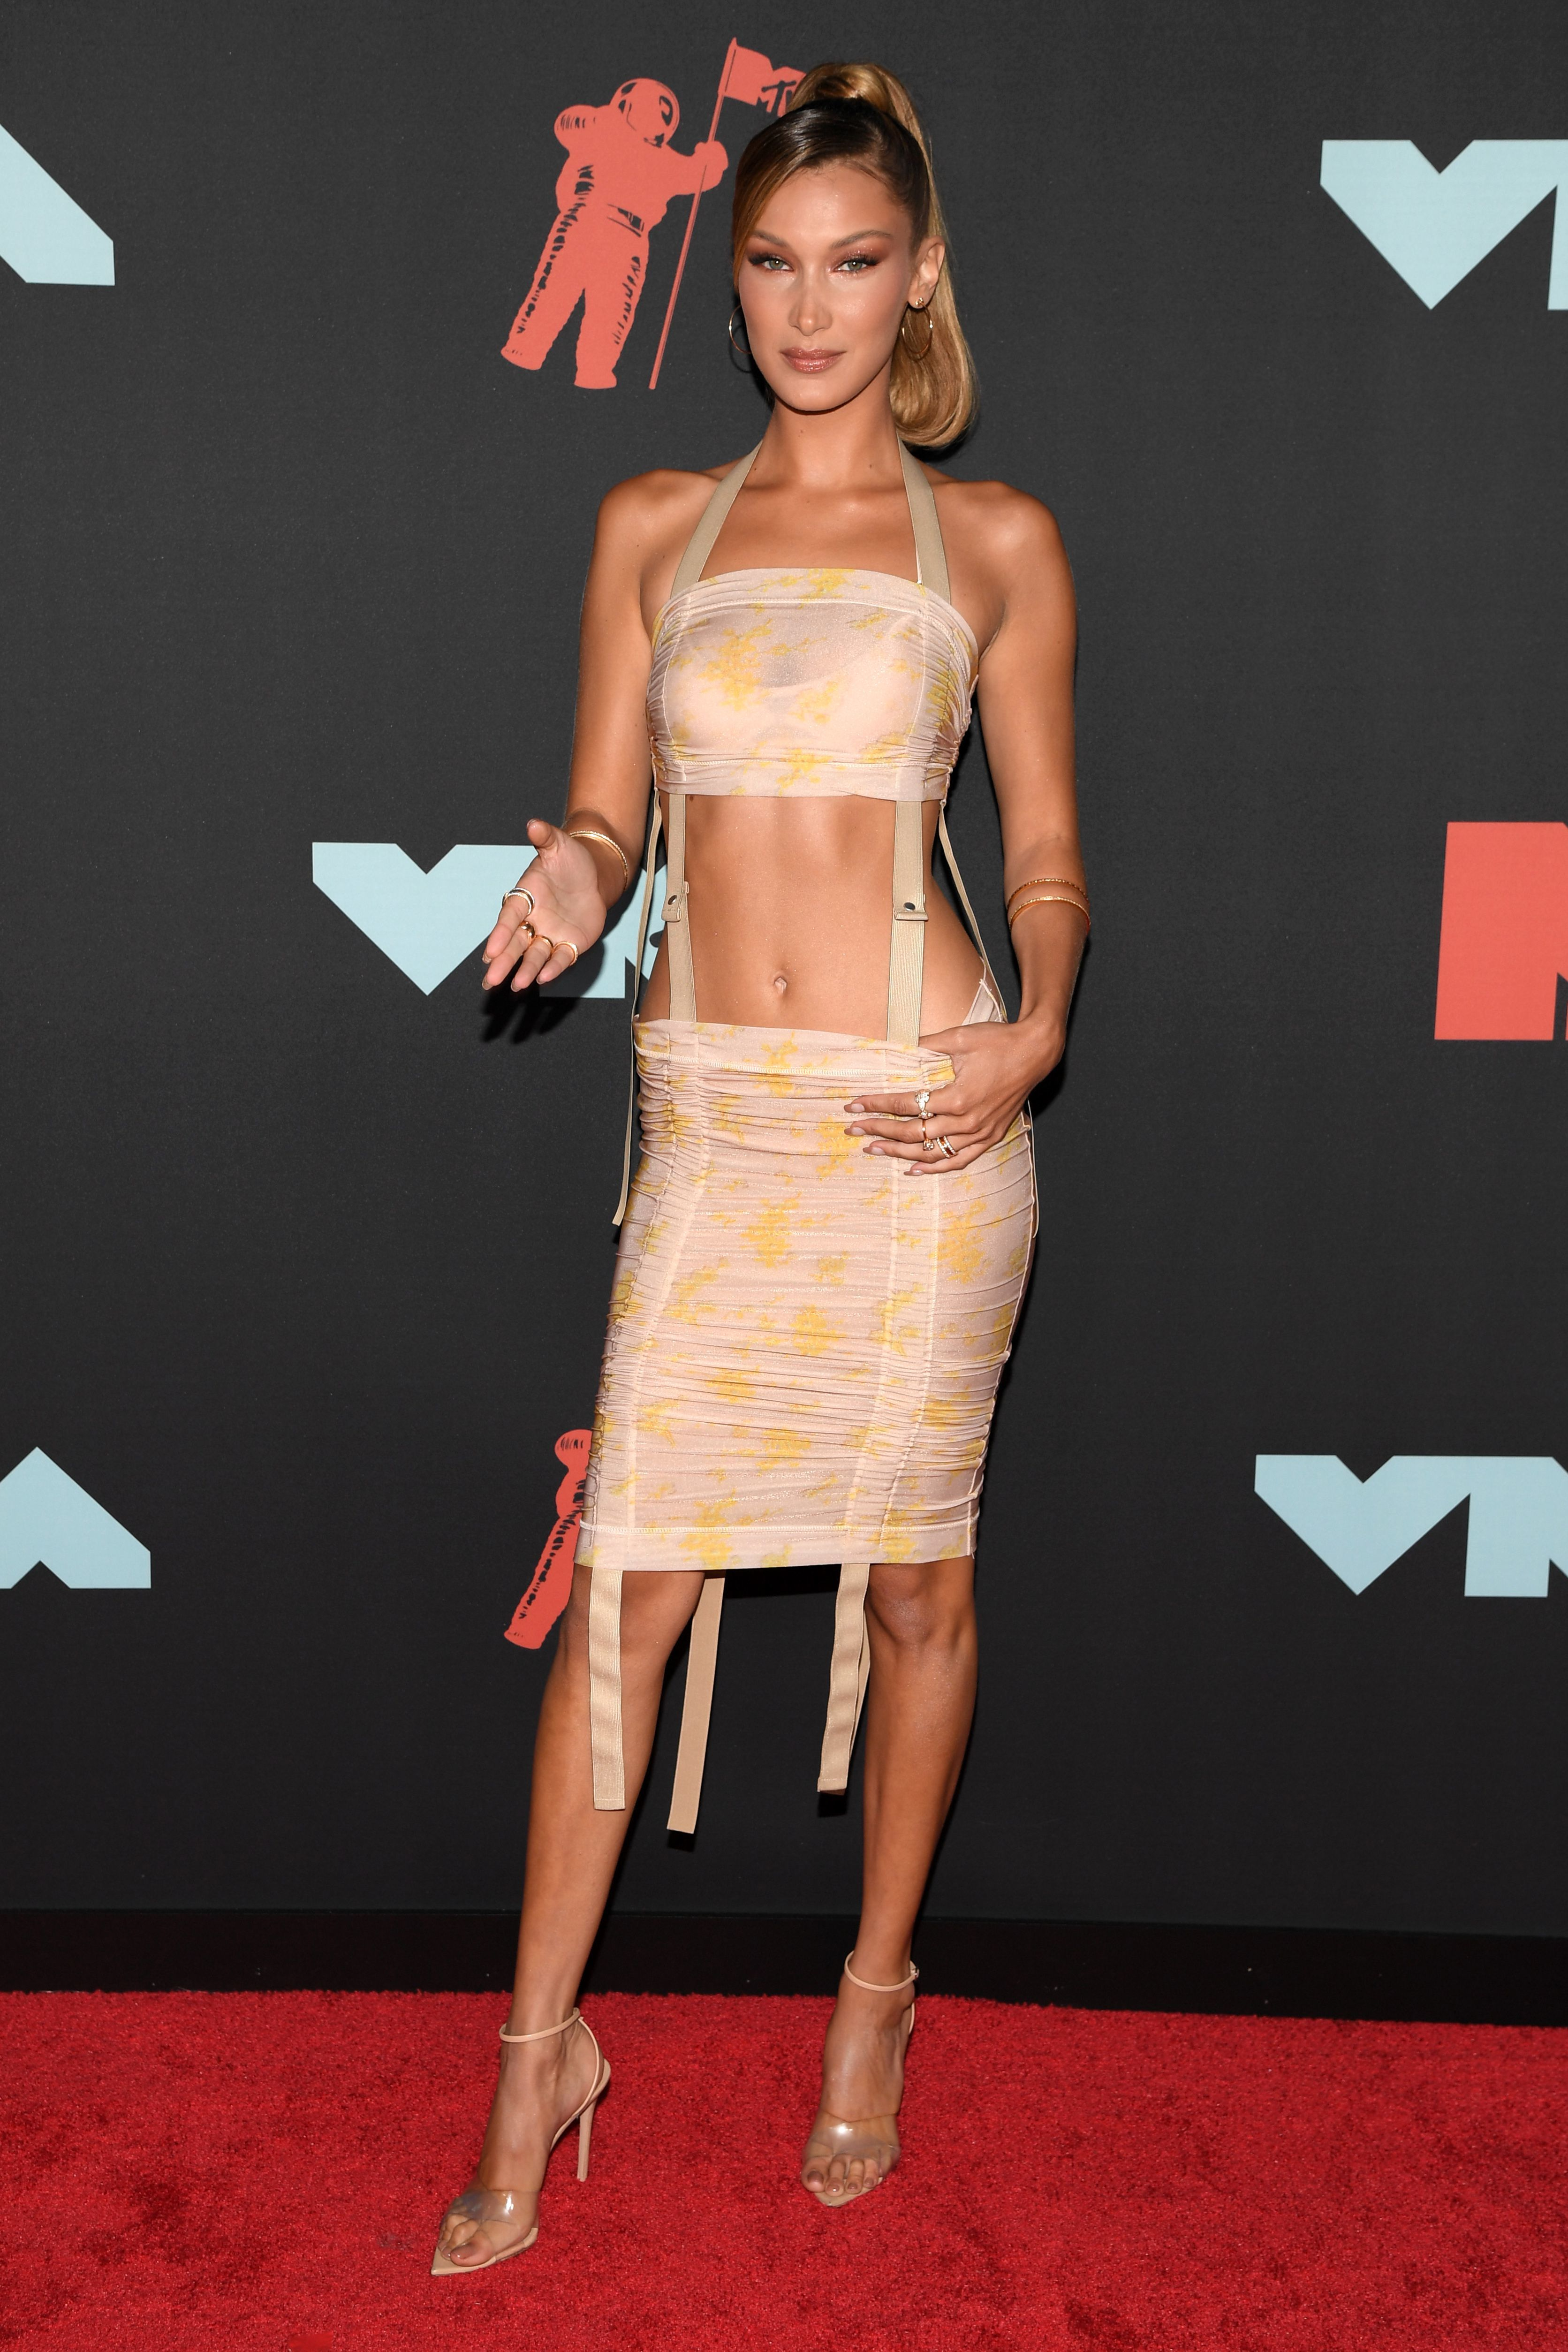 Fashion hits and misses from the 2019 MTV VMAs